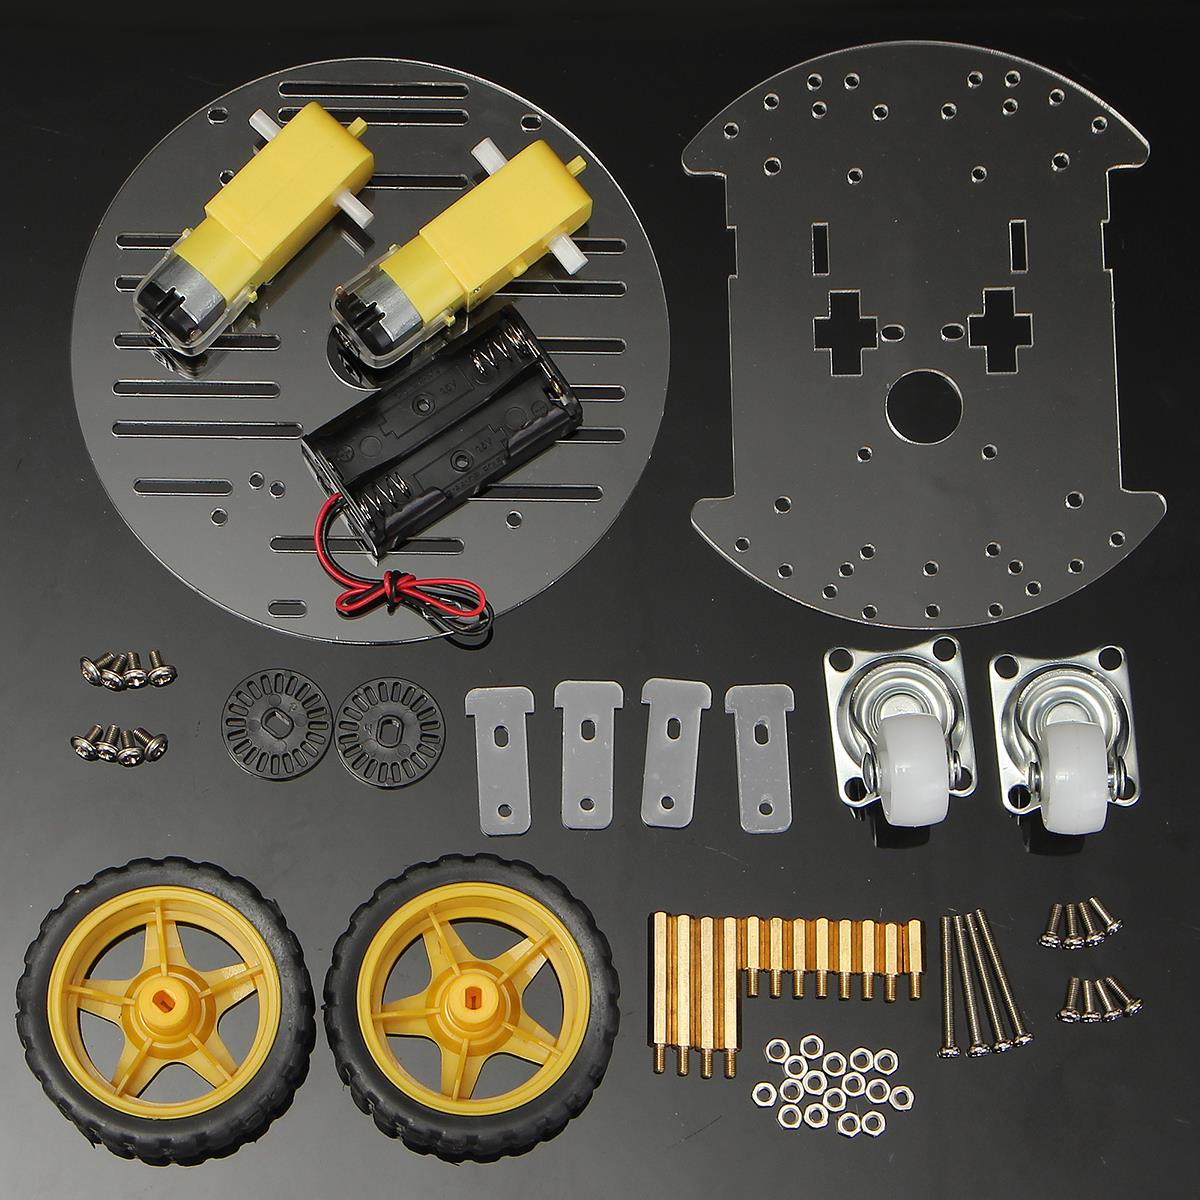 Set wd mini round double deck chassis kit robot smart